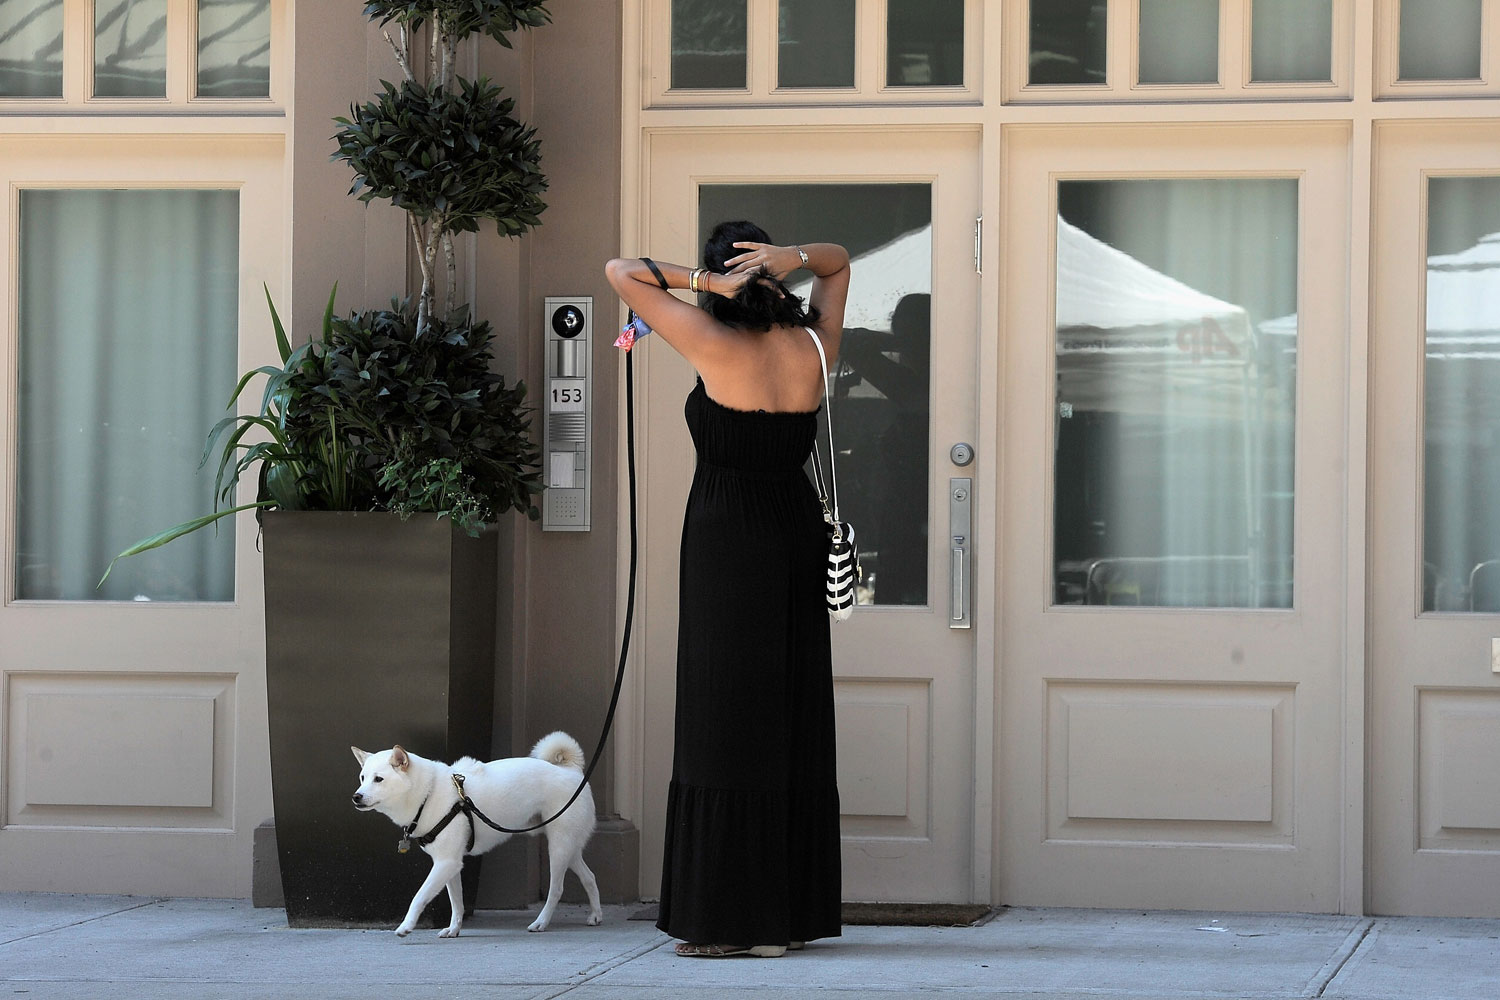 July 10, 2011. A female passerby adjust her hair using the glass in the front door of the  temporary residence of Dominique Strauss-Kahn and Anne Sinclair in the Tribeca neighborhood of New York City.